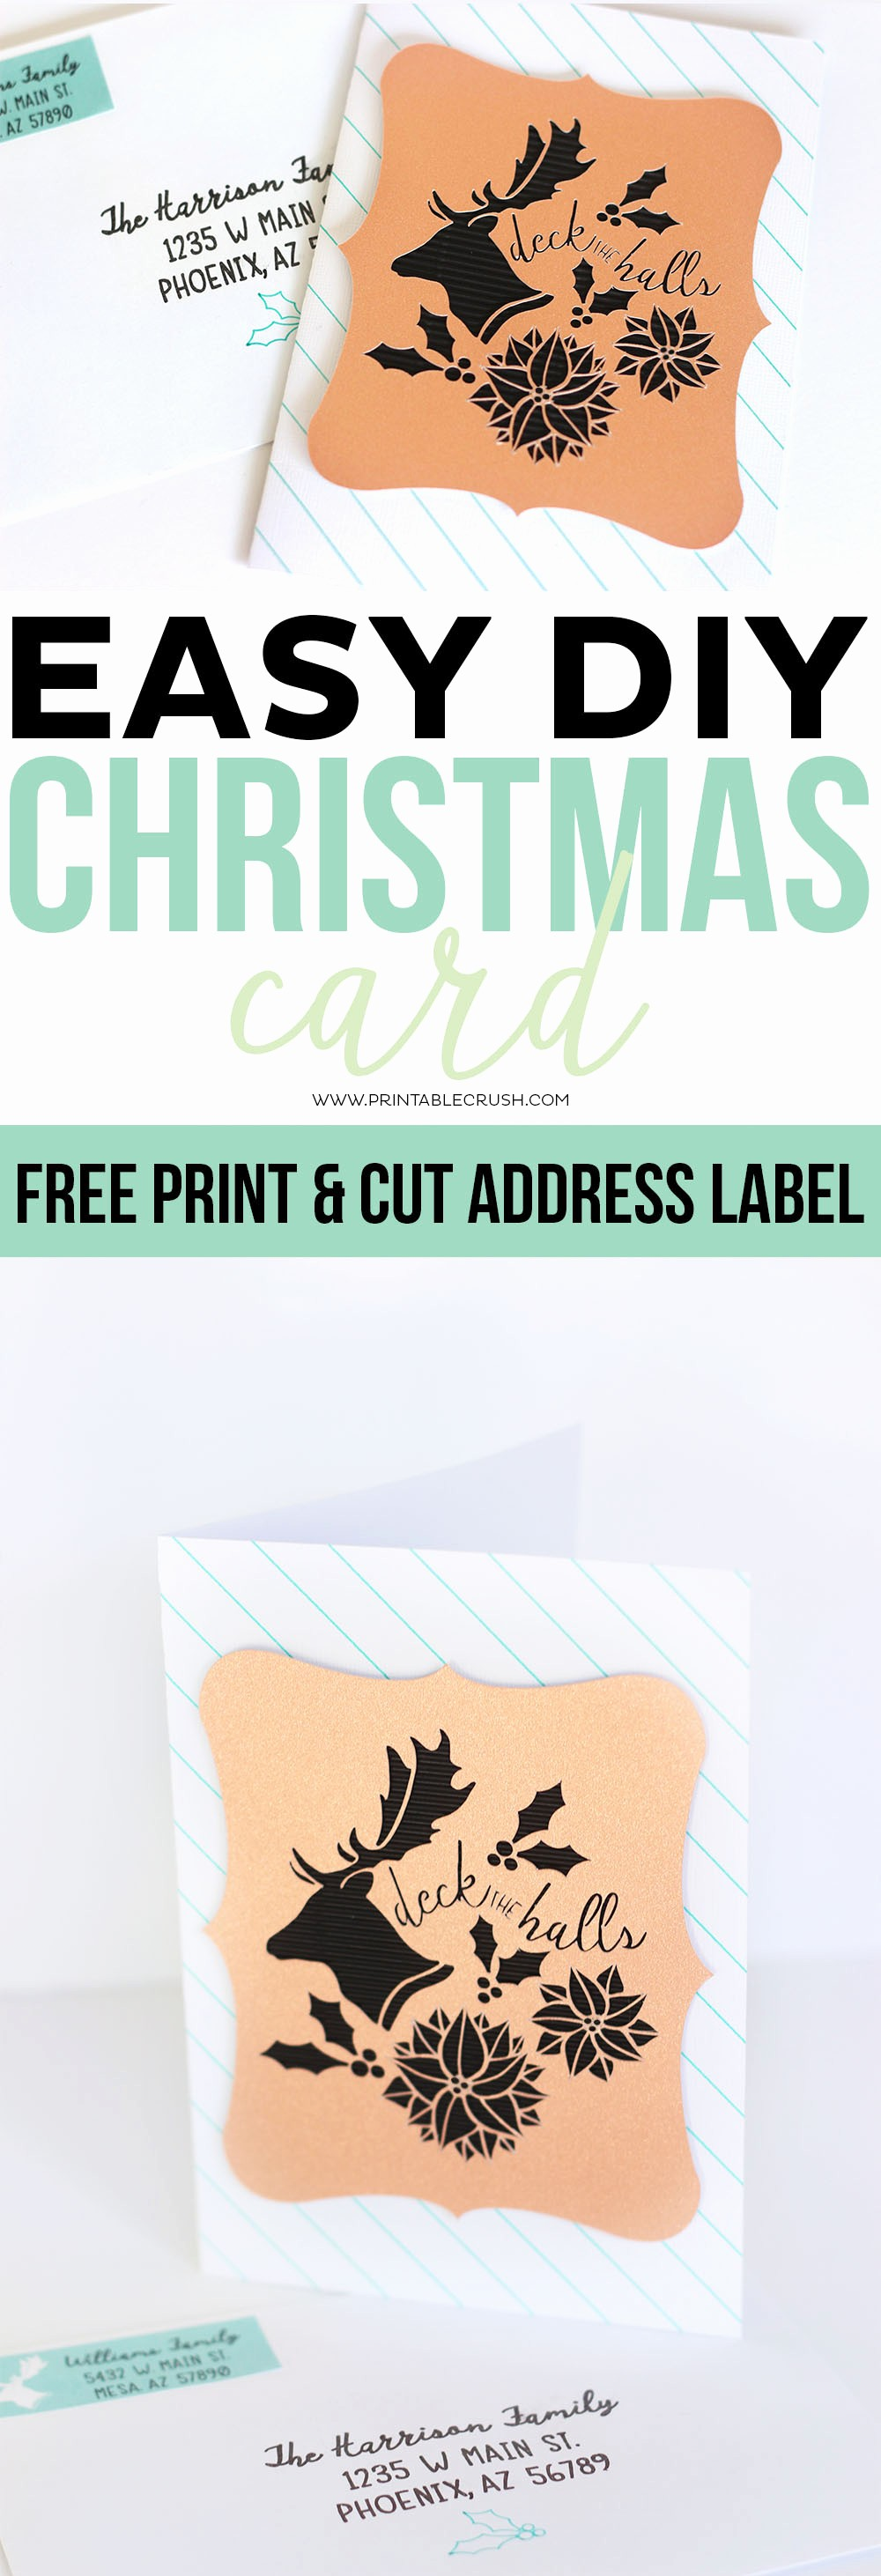 Free Printable Christmas Mailing Labels Luxury Diy Christmas Card and Free Printable Address Label